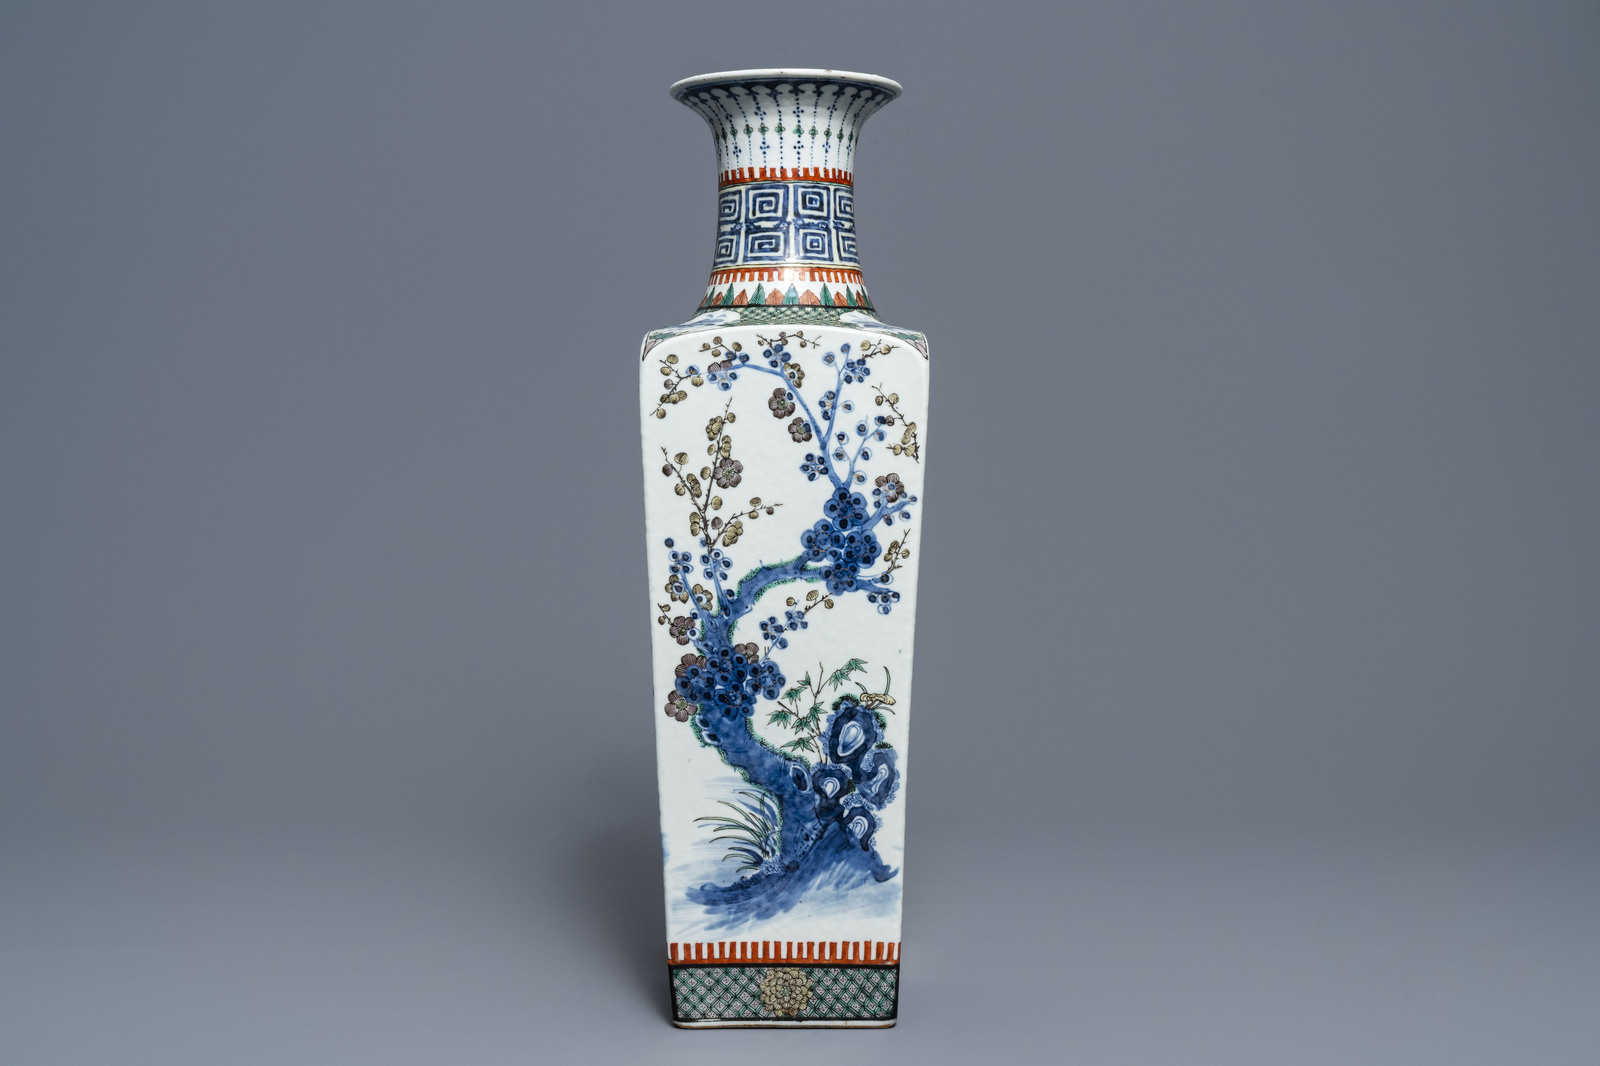 Lot 46 - A square Chinese famille verte vase with floral design, 19th C.